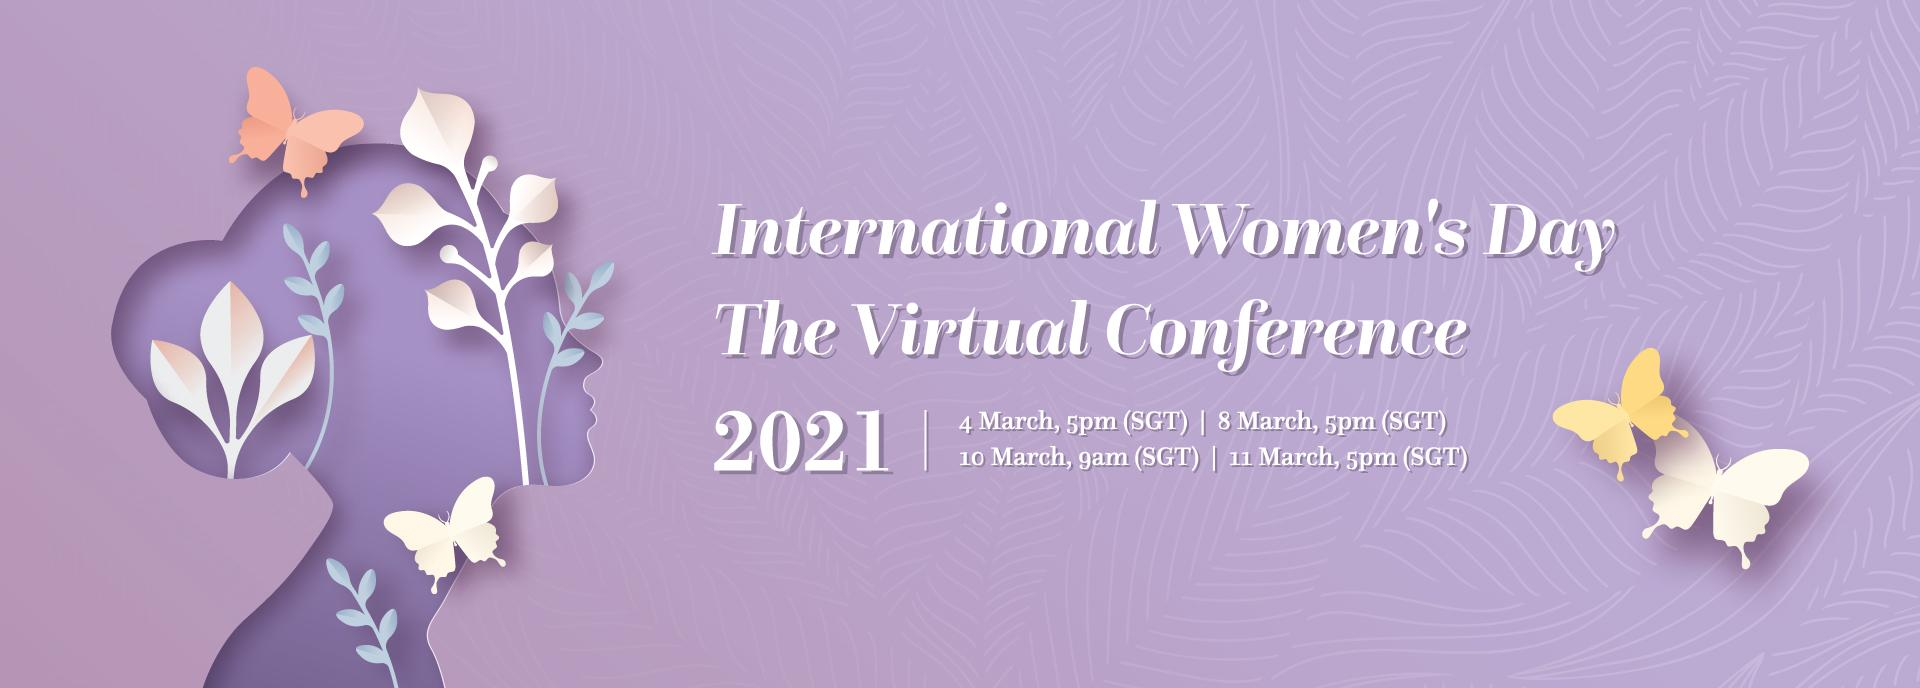 The BritCham Singapore International Women's Day 2021 Virtual Conference